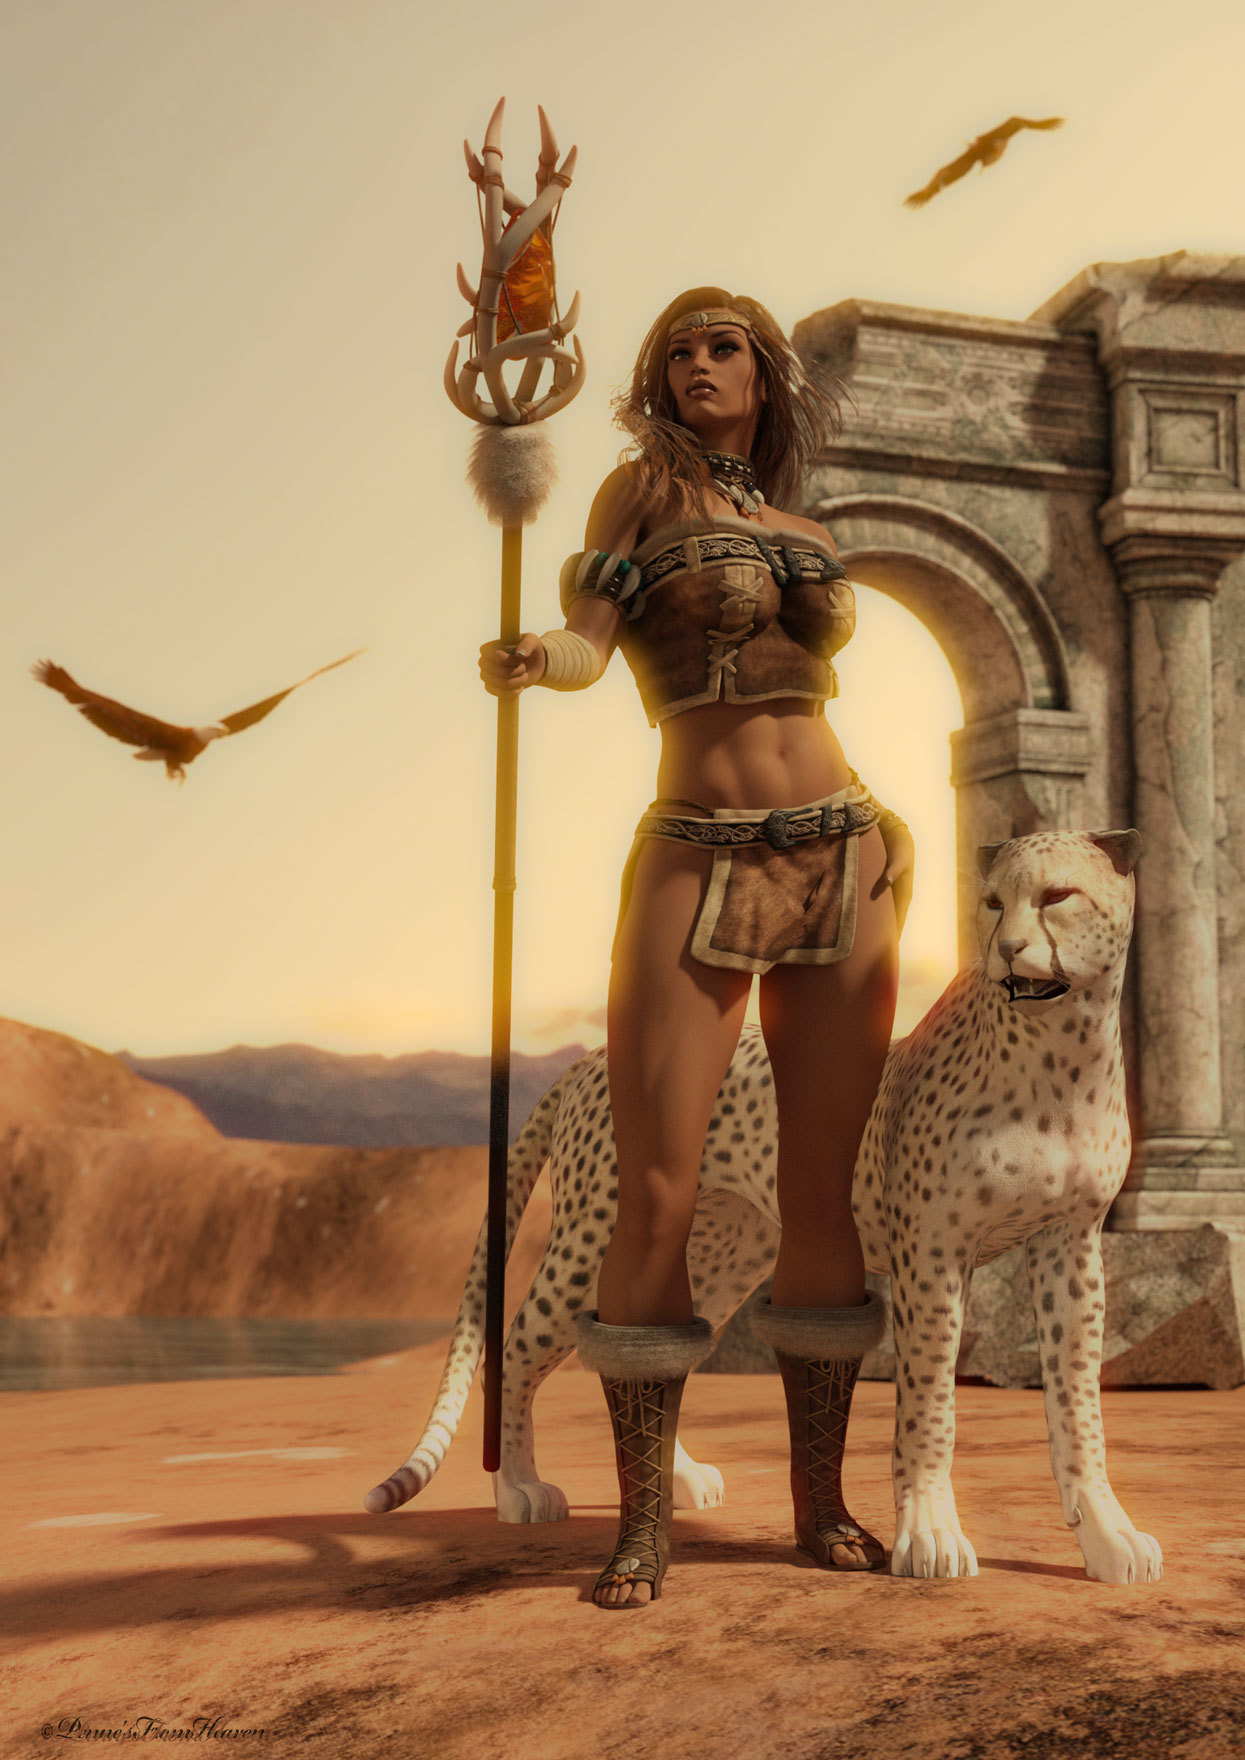 Searching for New Lands to Conquer by dollmommy